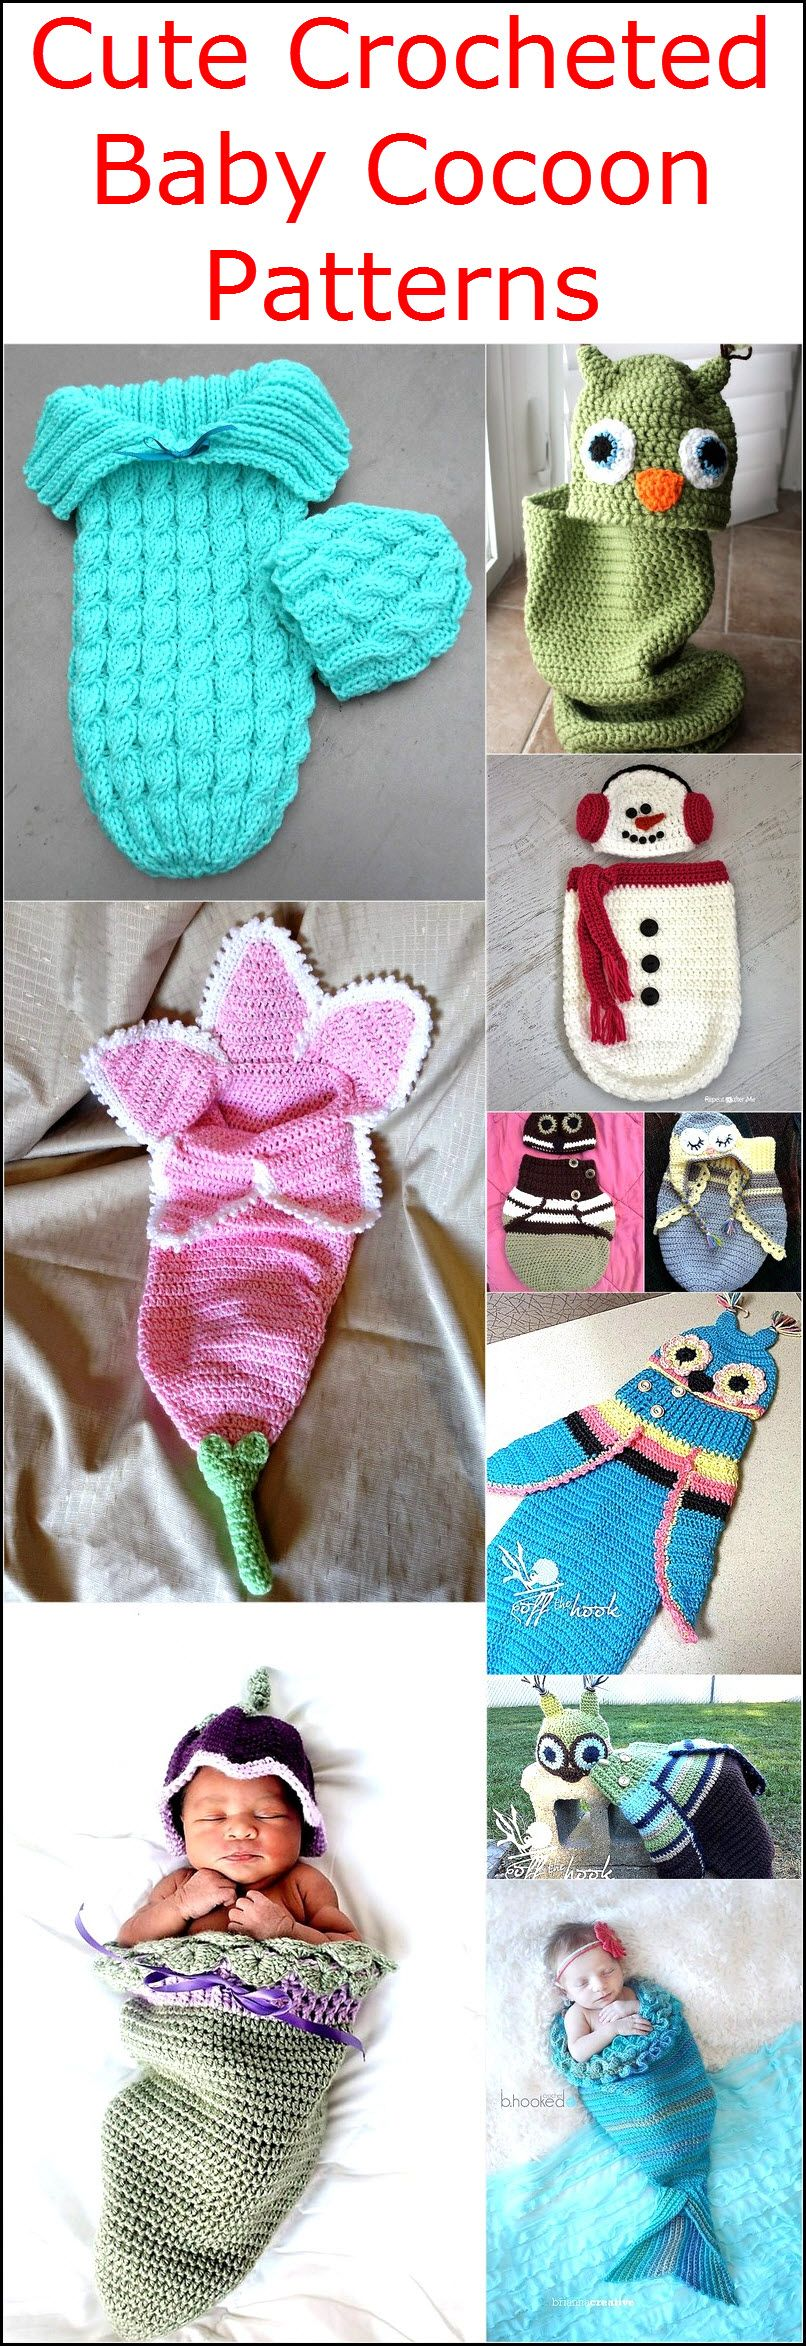 Cute Crocheted Free Baby Cocoon Patterns